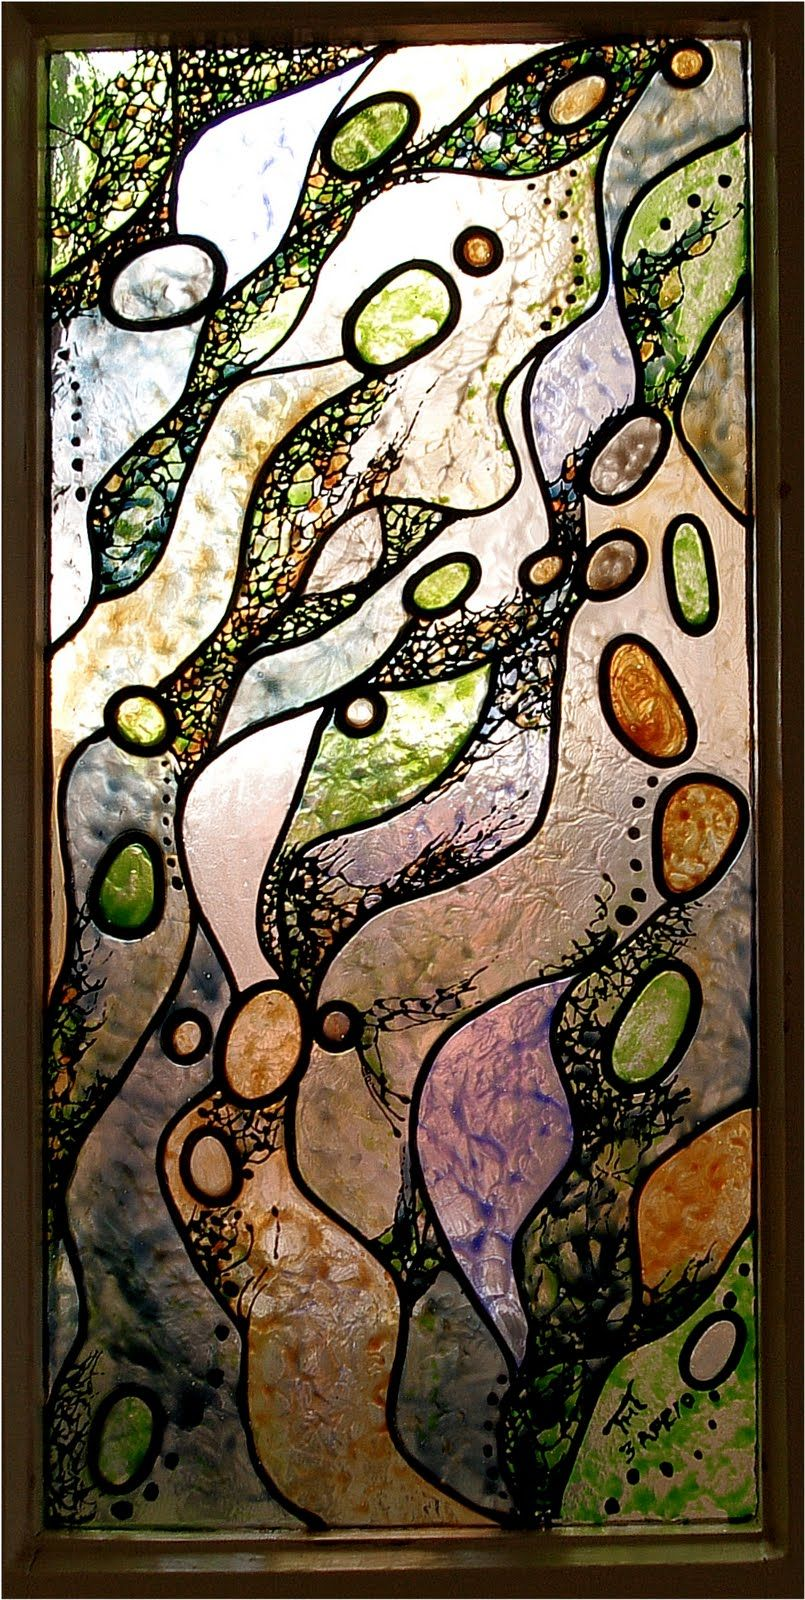 Merveilleux Images For U003e Window Glass Painting Designs For Home